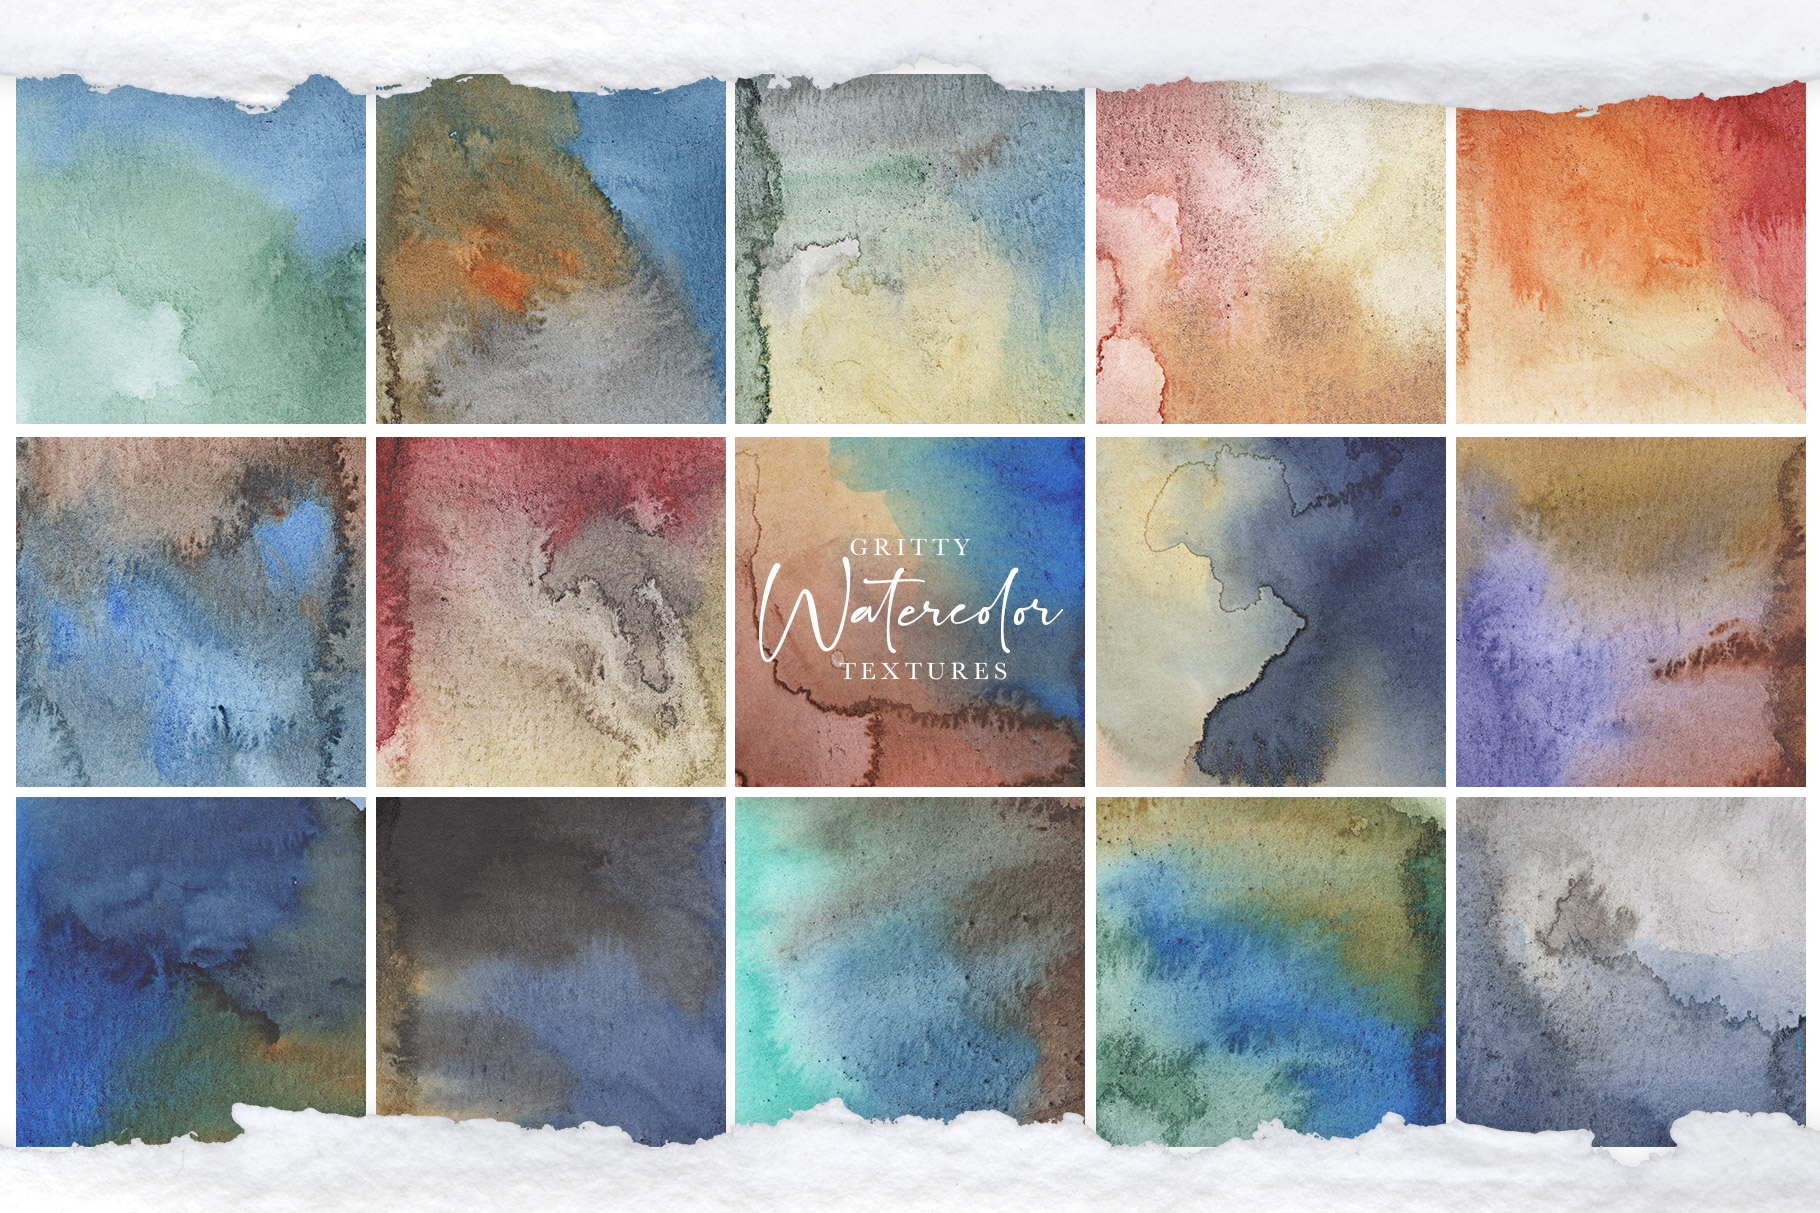 Gritty Watercolor Textures Vol.2 - Nightflower